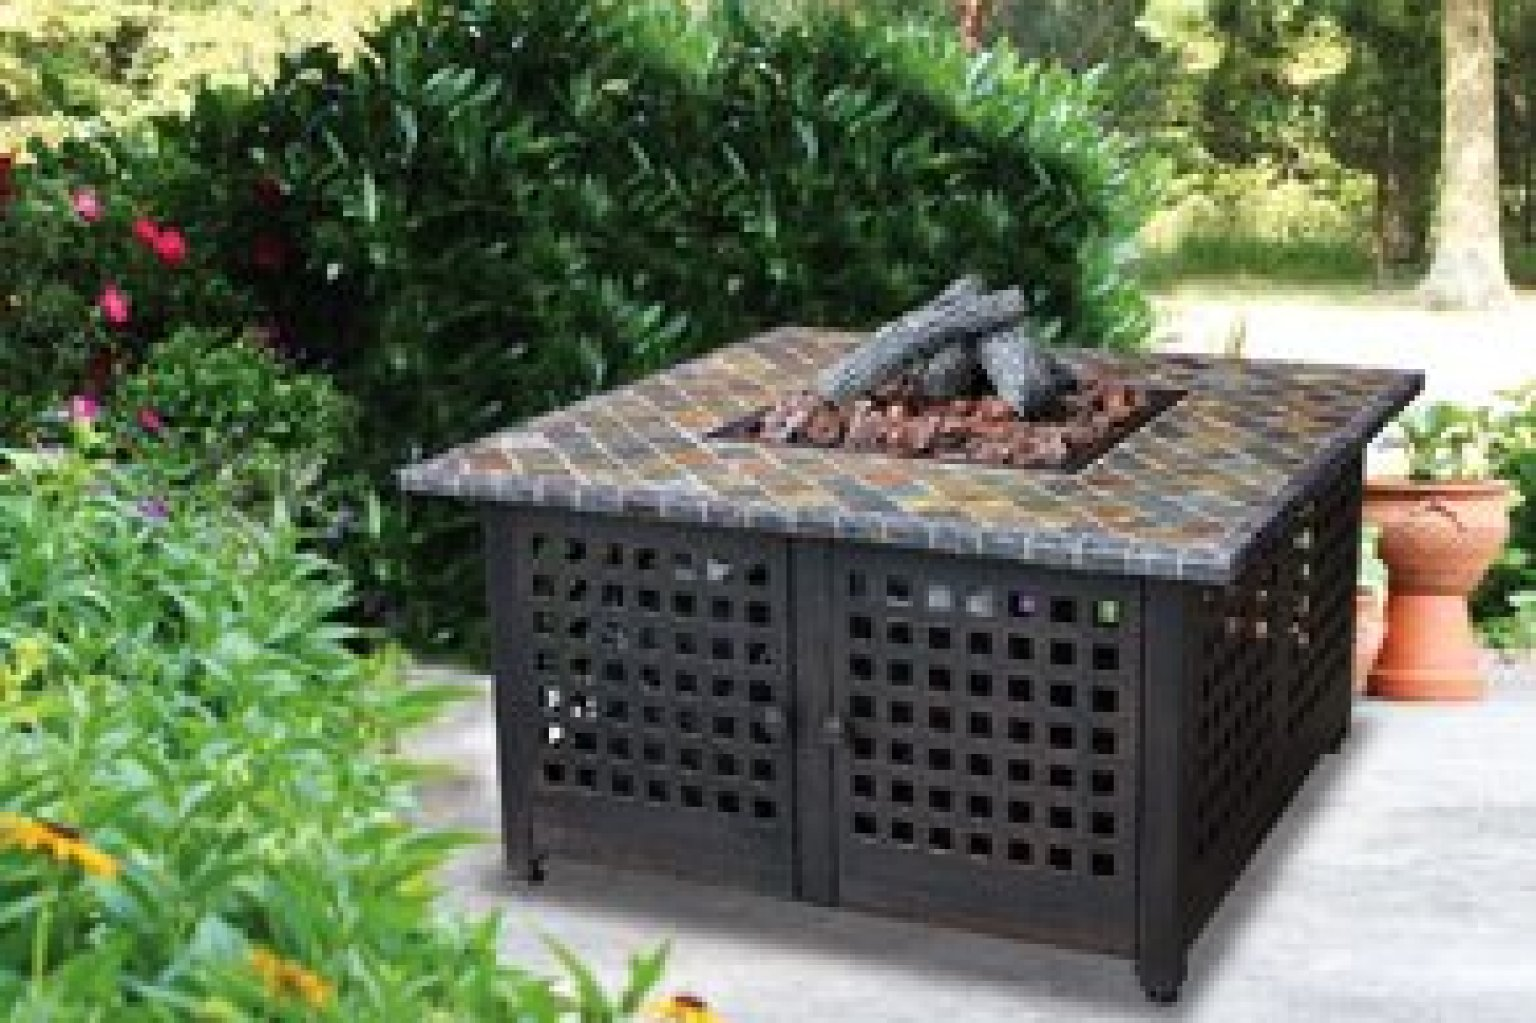 Hereu0027s How To Find The Best Fire Pits For Entertaining Outdoors This Fall  (PHOTOS)   HuffPost